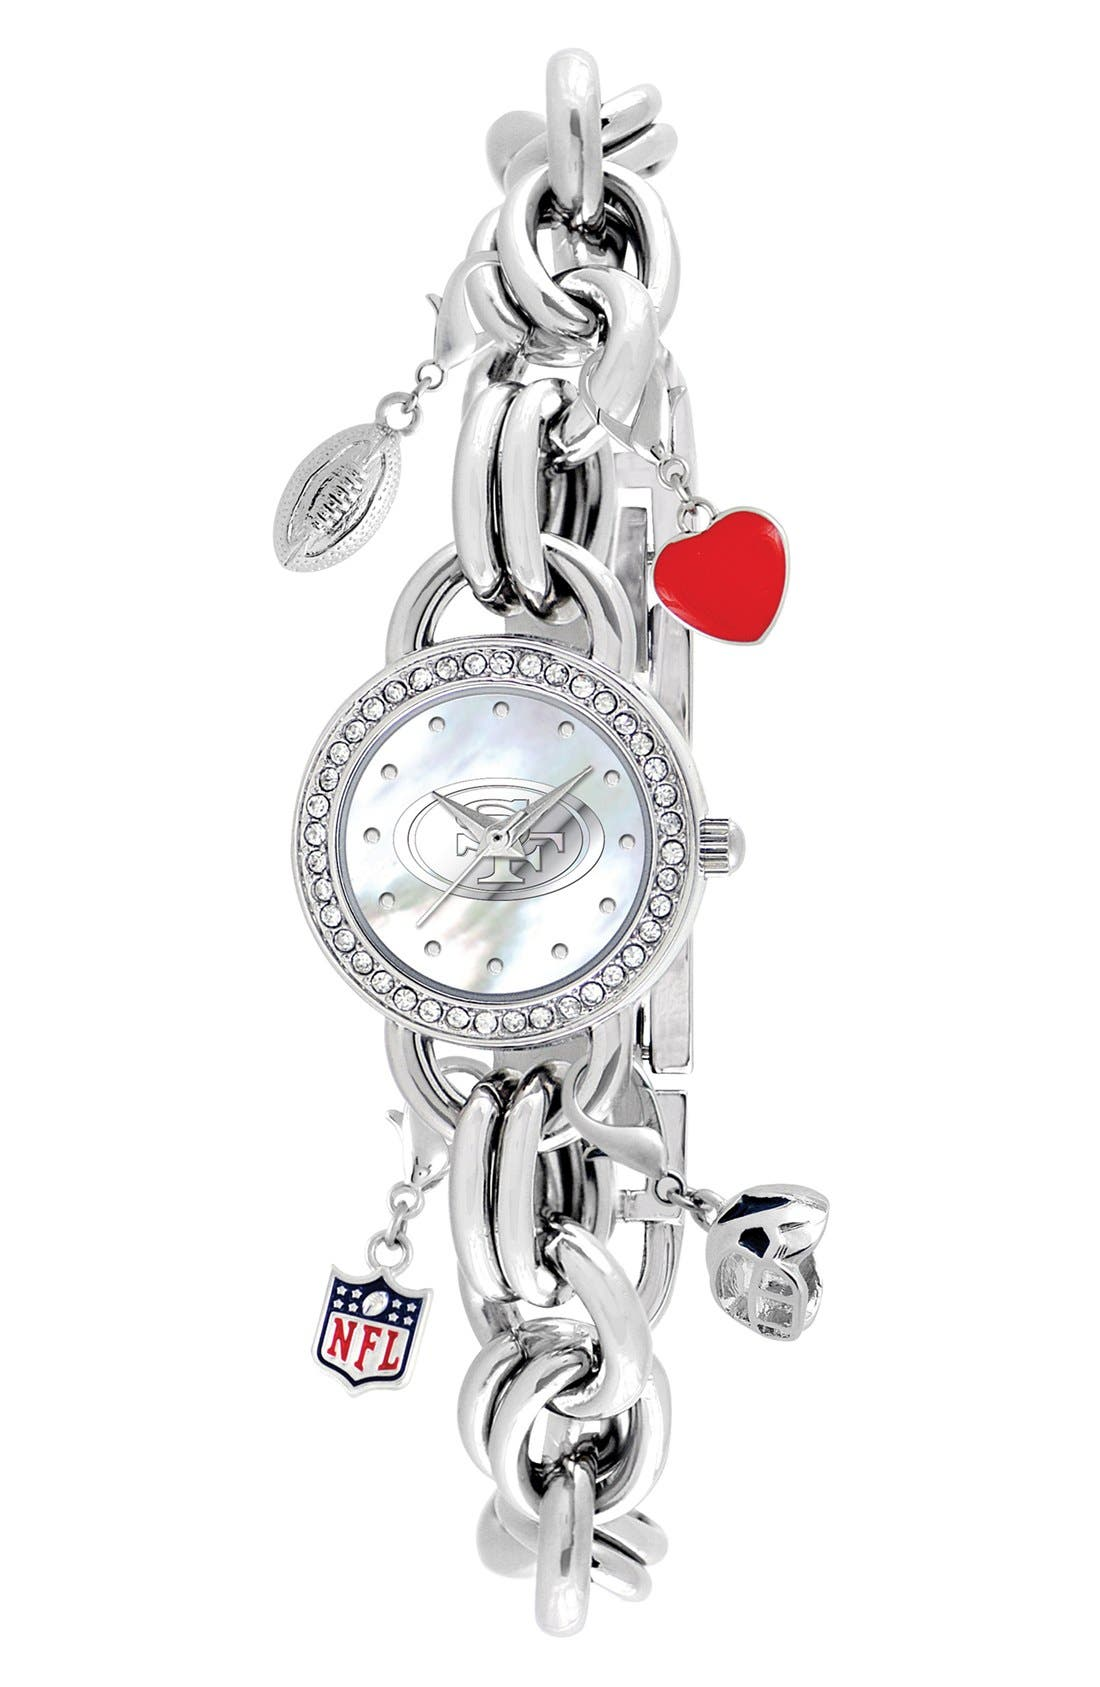 Main Image - Game Time Watches 'NFL - San Francisco 49ers' Charm Bracelet Watch, 23mm